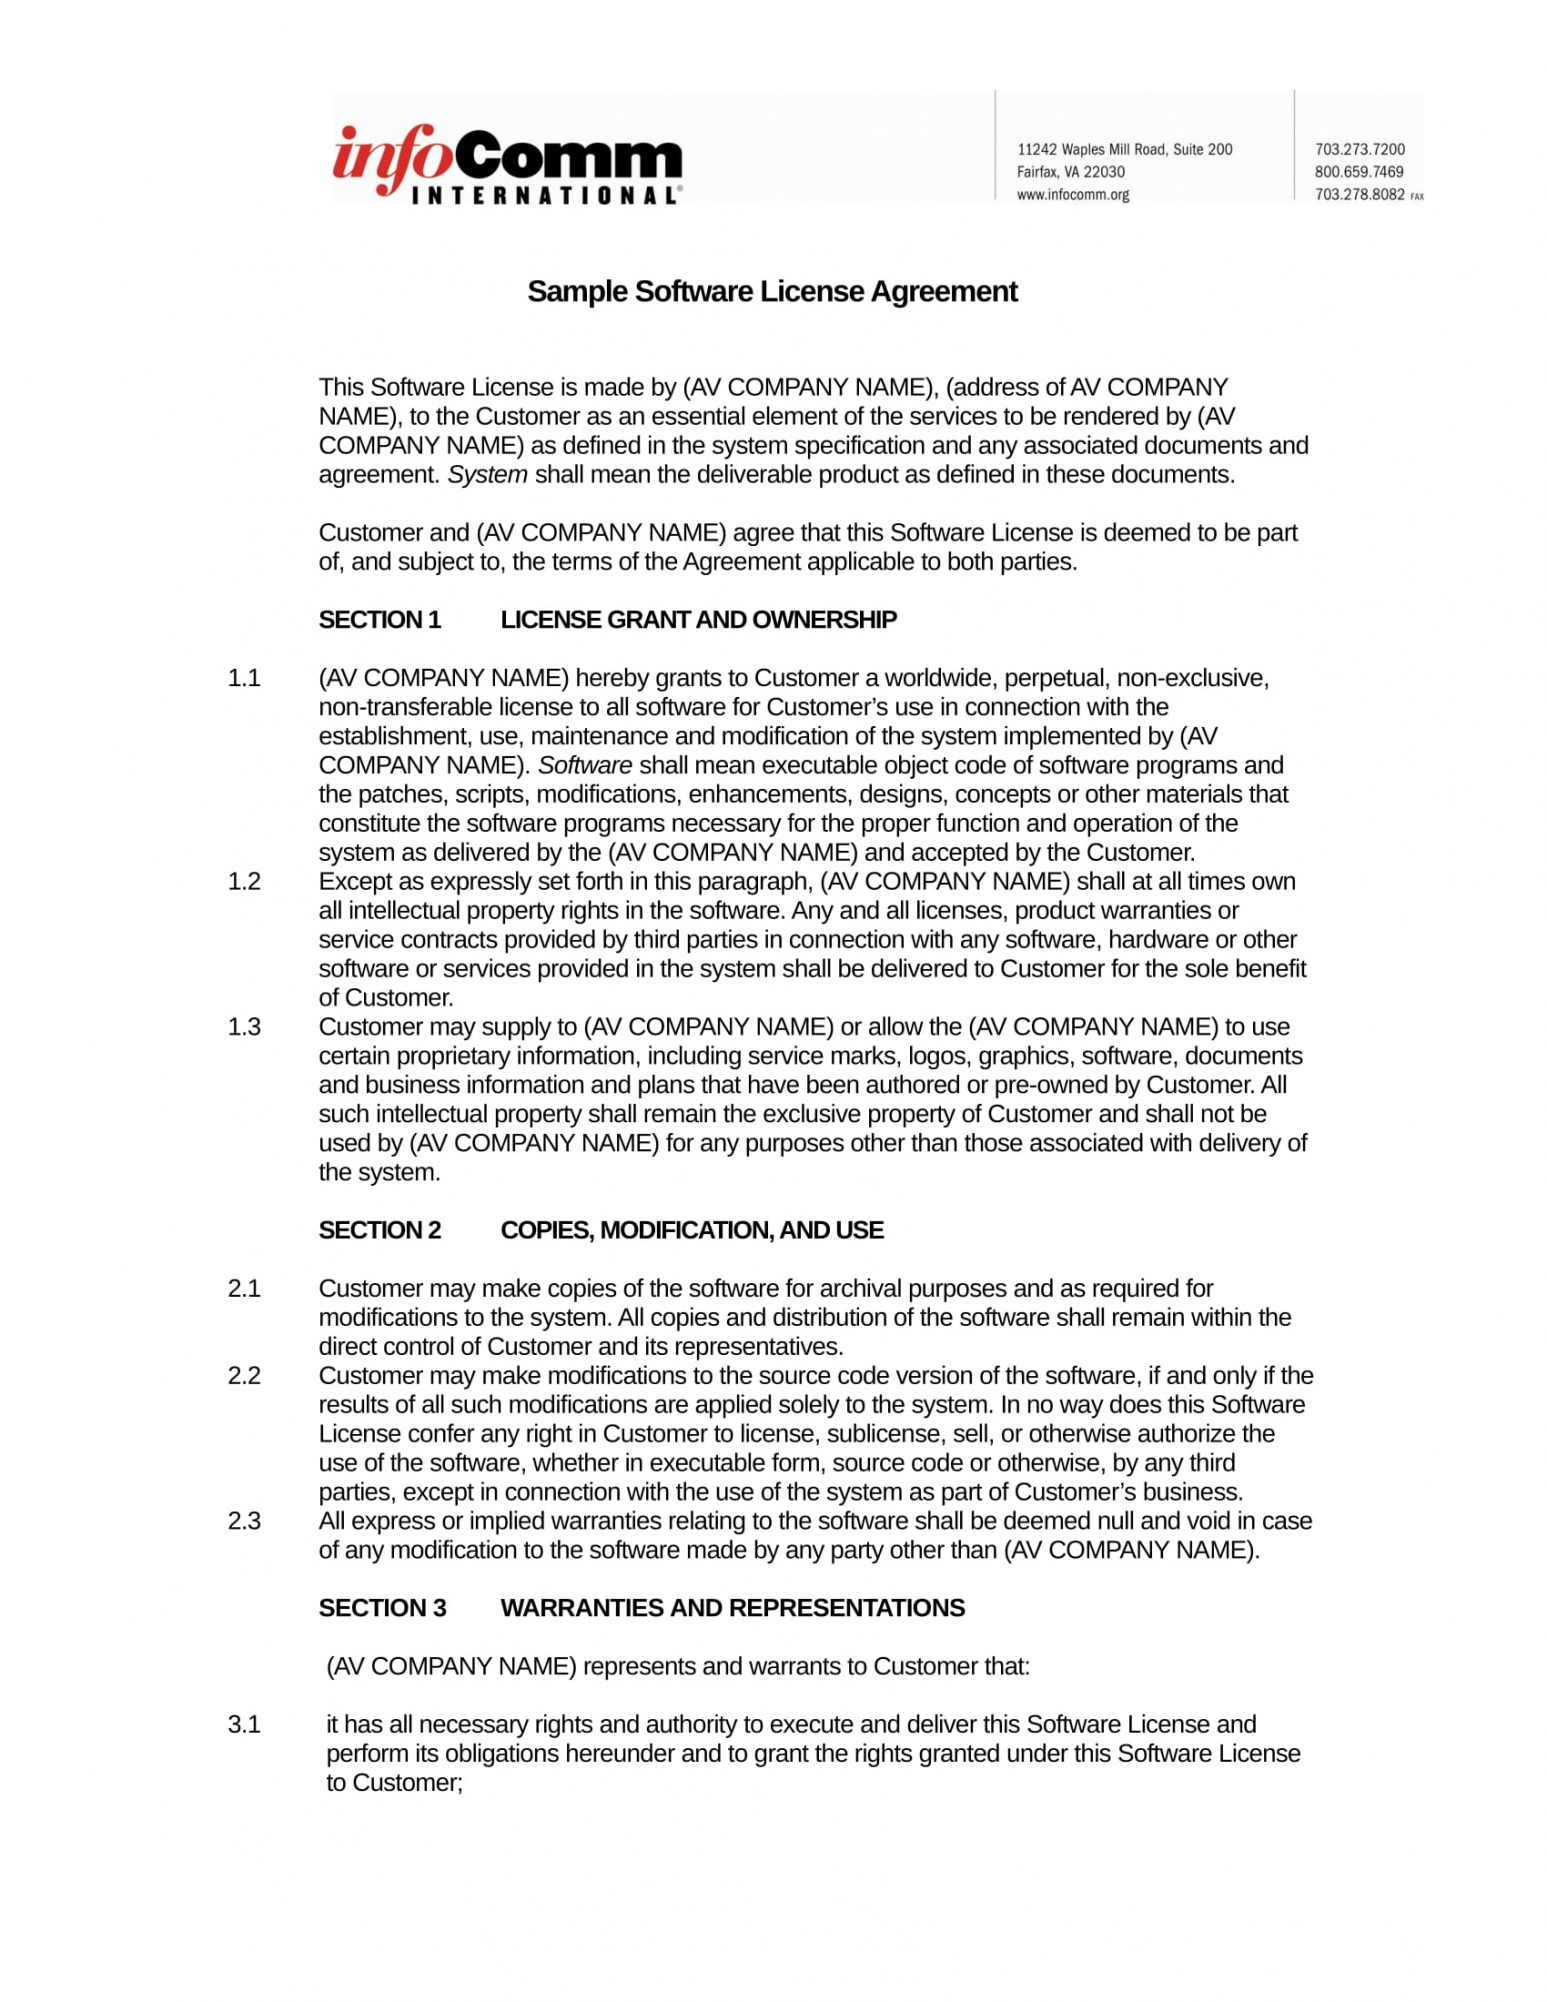 free 2 source code license agreement forms in pdf source code license agreement template sample